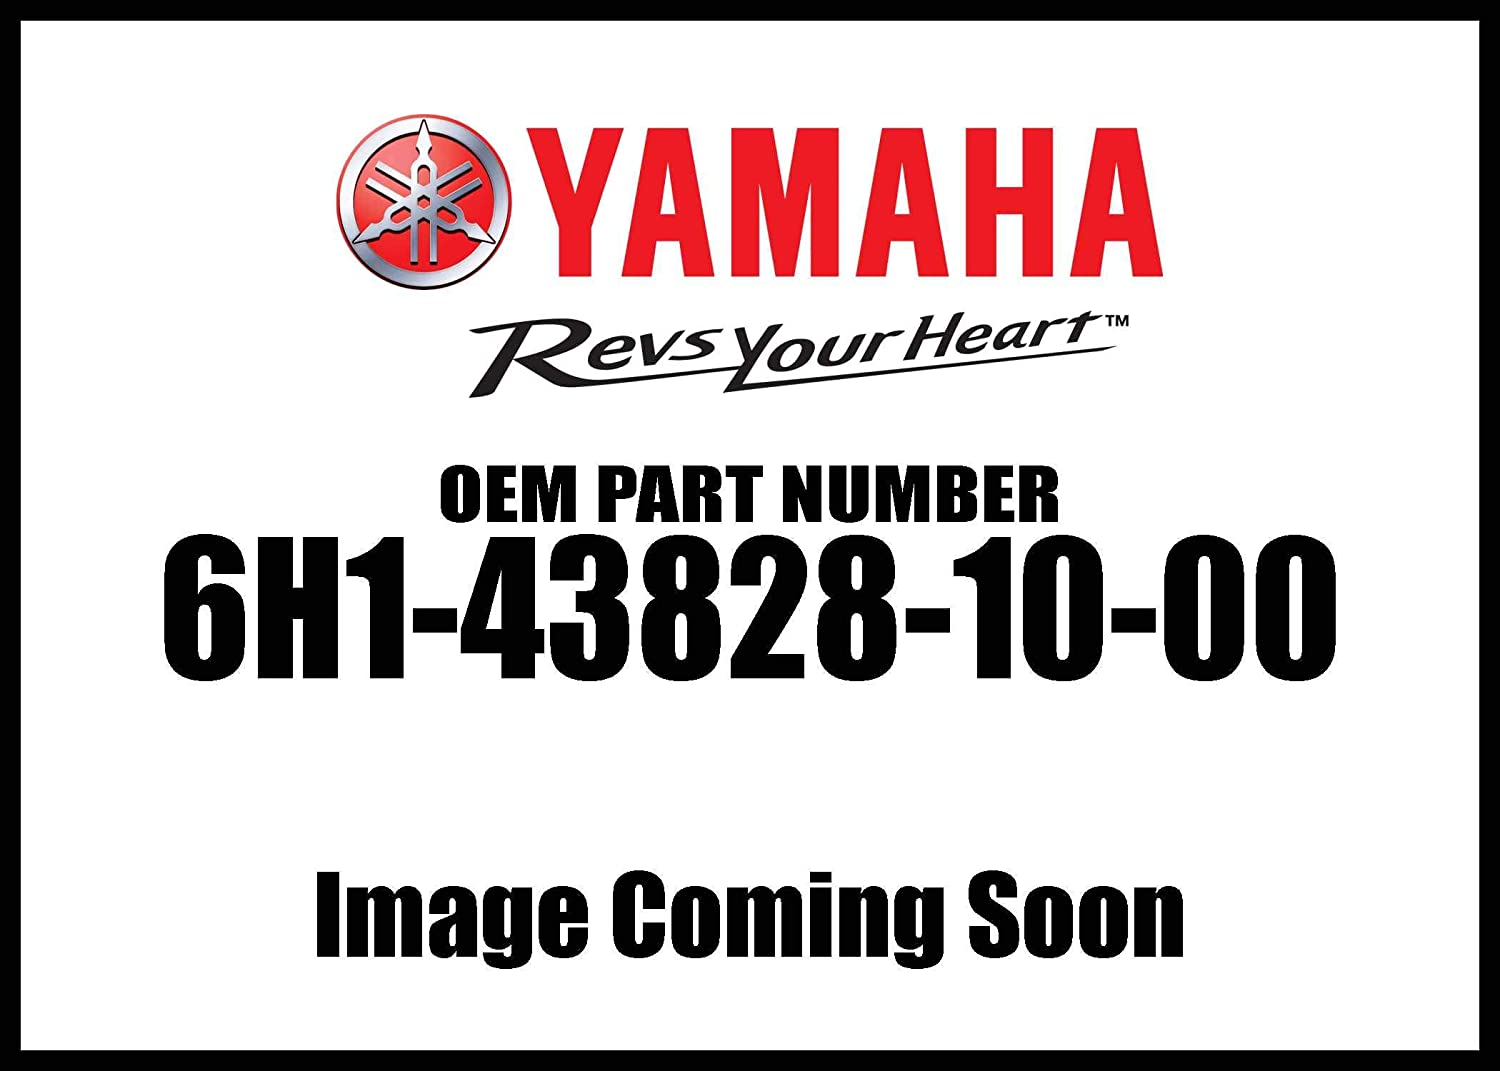 Yamaha 6H1-43828-10-00 Body, Reservoir; 6H1438281000 Made by Yamaha